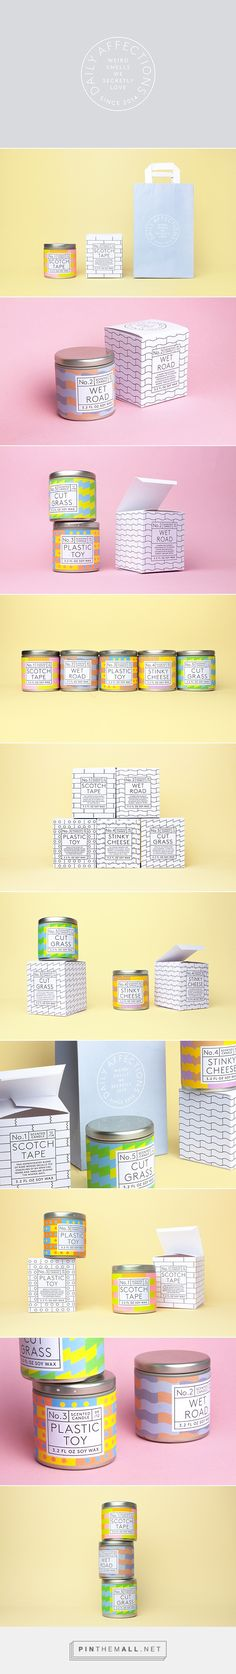 Daily Affections packaging designed by Albert J. Son PD